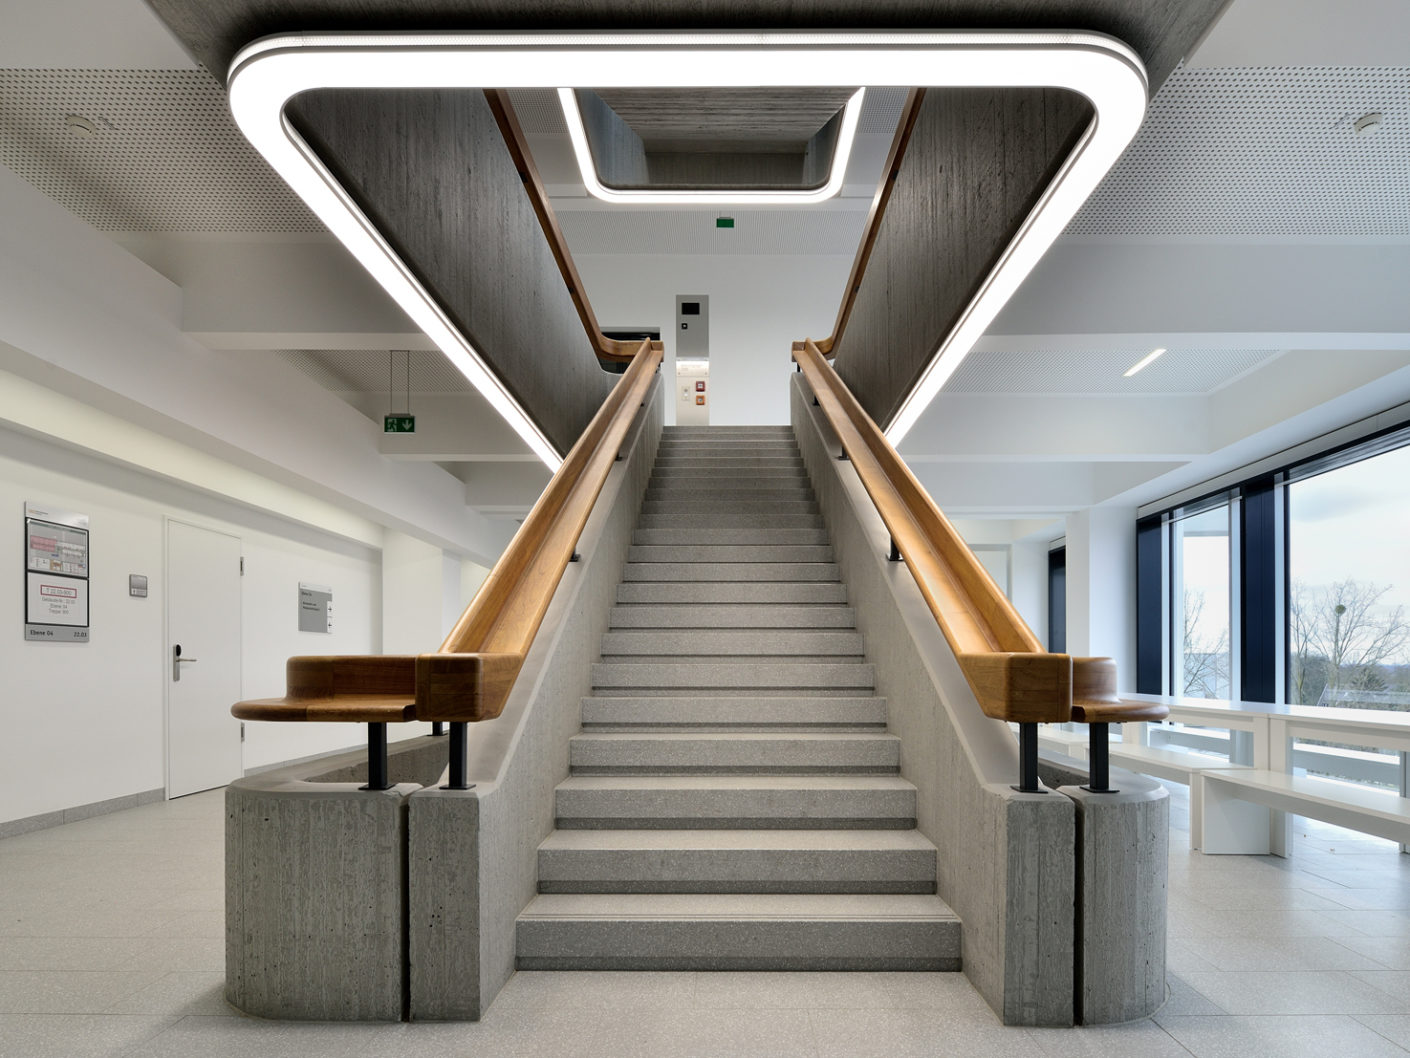 Sacred staircase: The staircase is almost sacred with the light of Ado Lights.